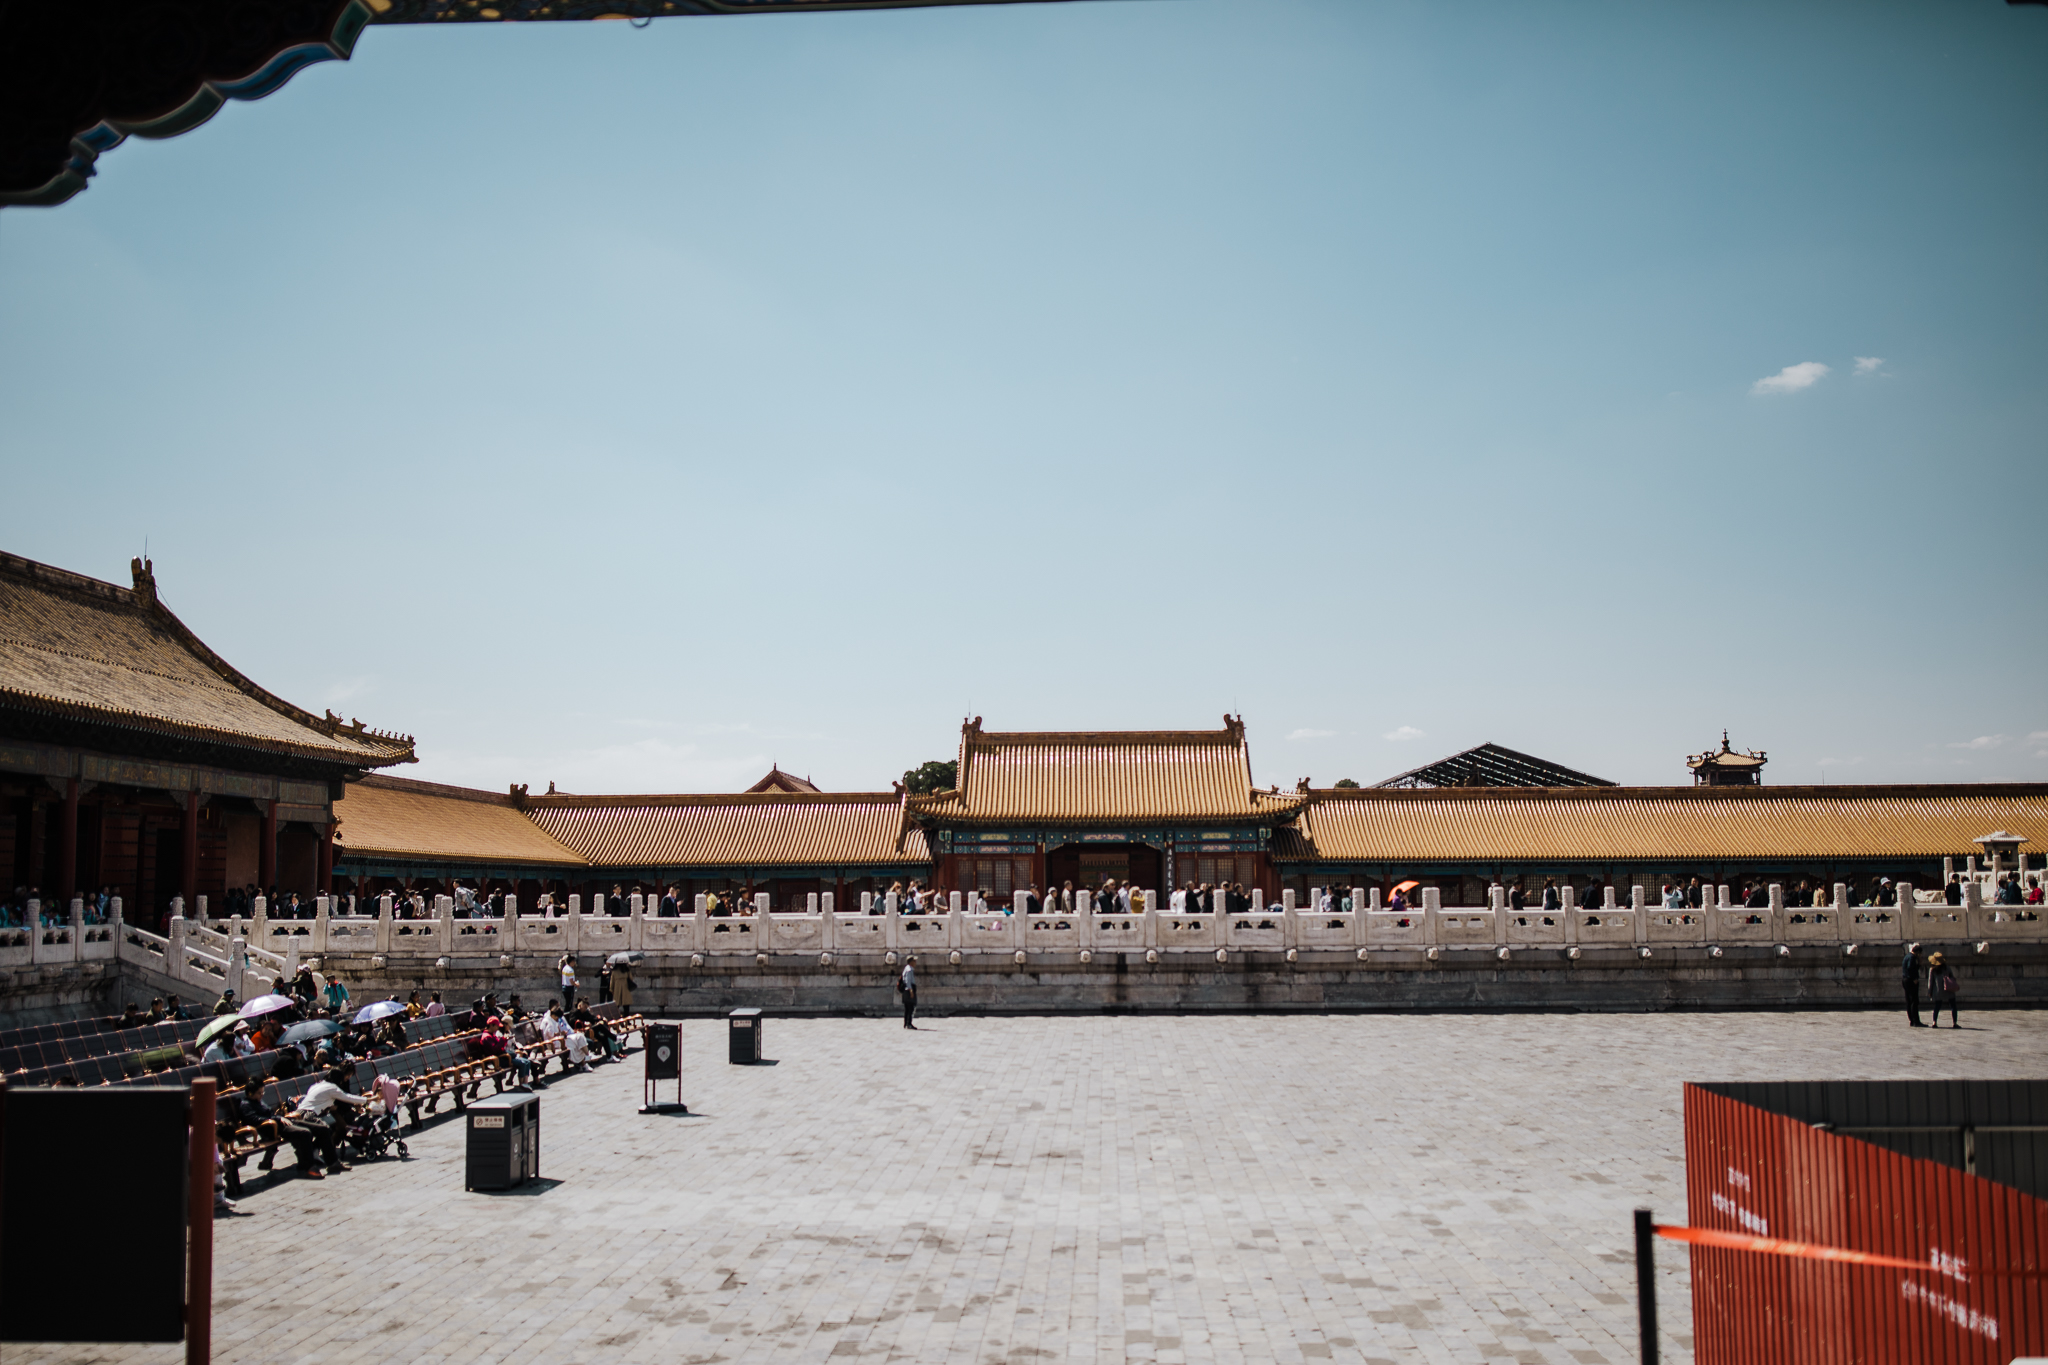 Mutianyu, Great Wall of China,  Beijing, Forbidden City, Emperors Summer Palace (27 of 51).jpg